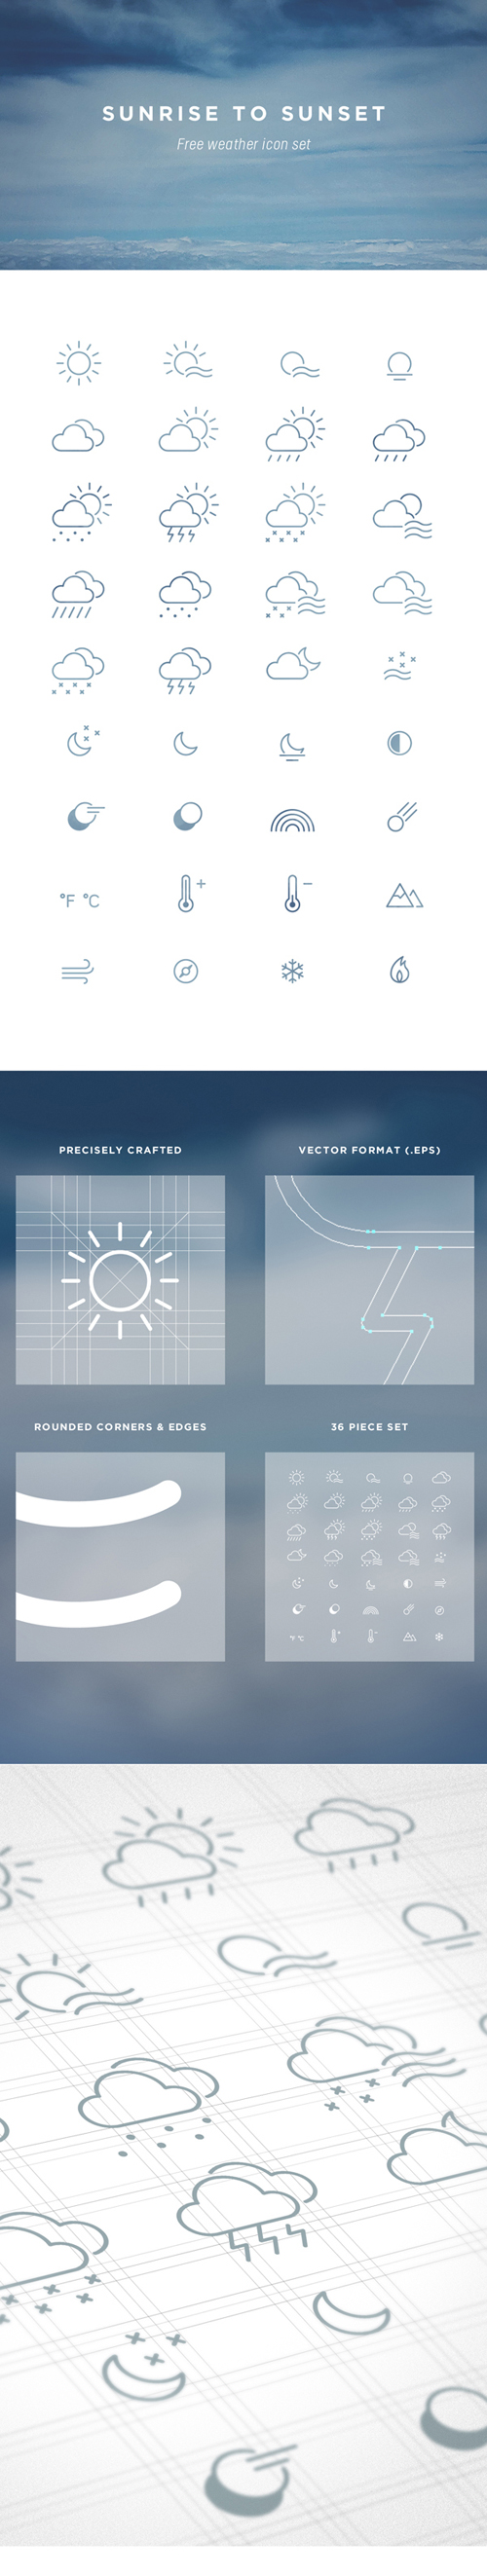 Creative outline weather icons vector